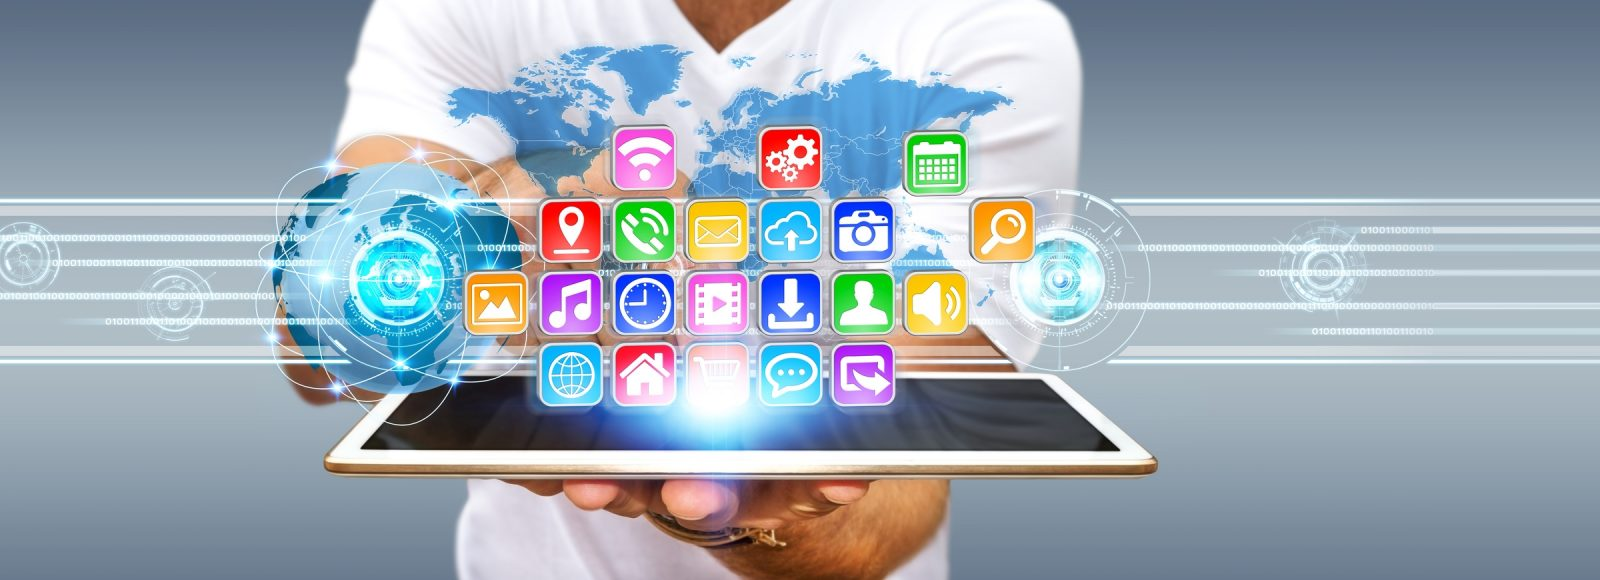 Young man using digital application with icons flying over his tablet